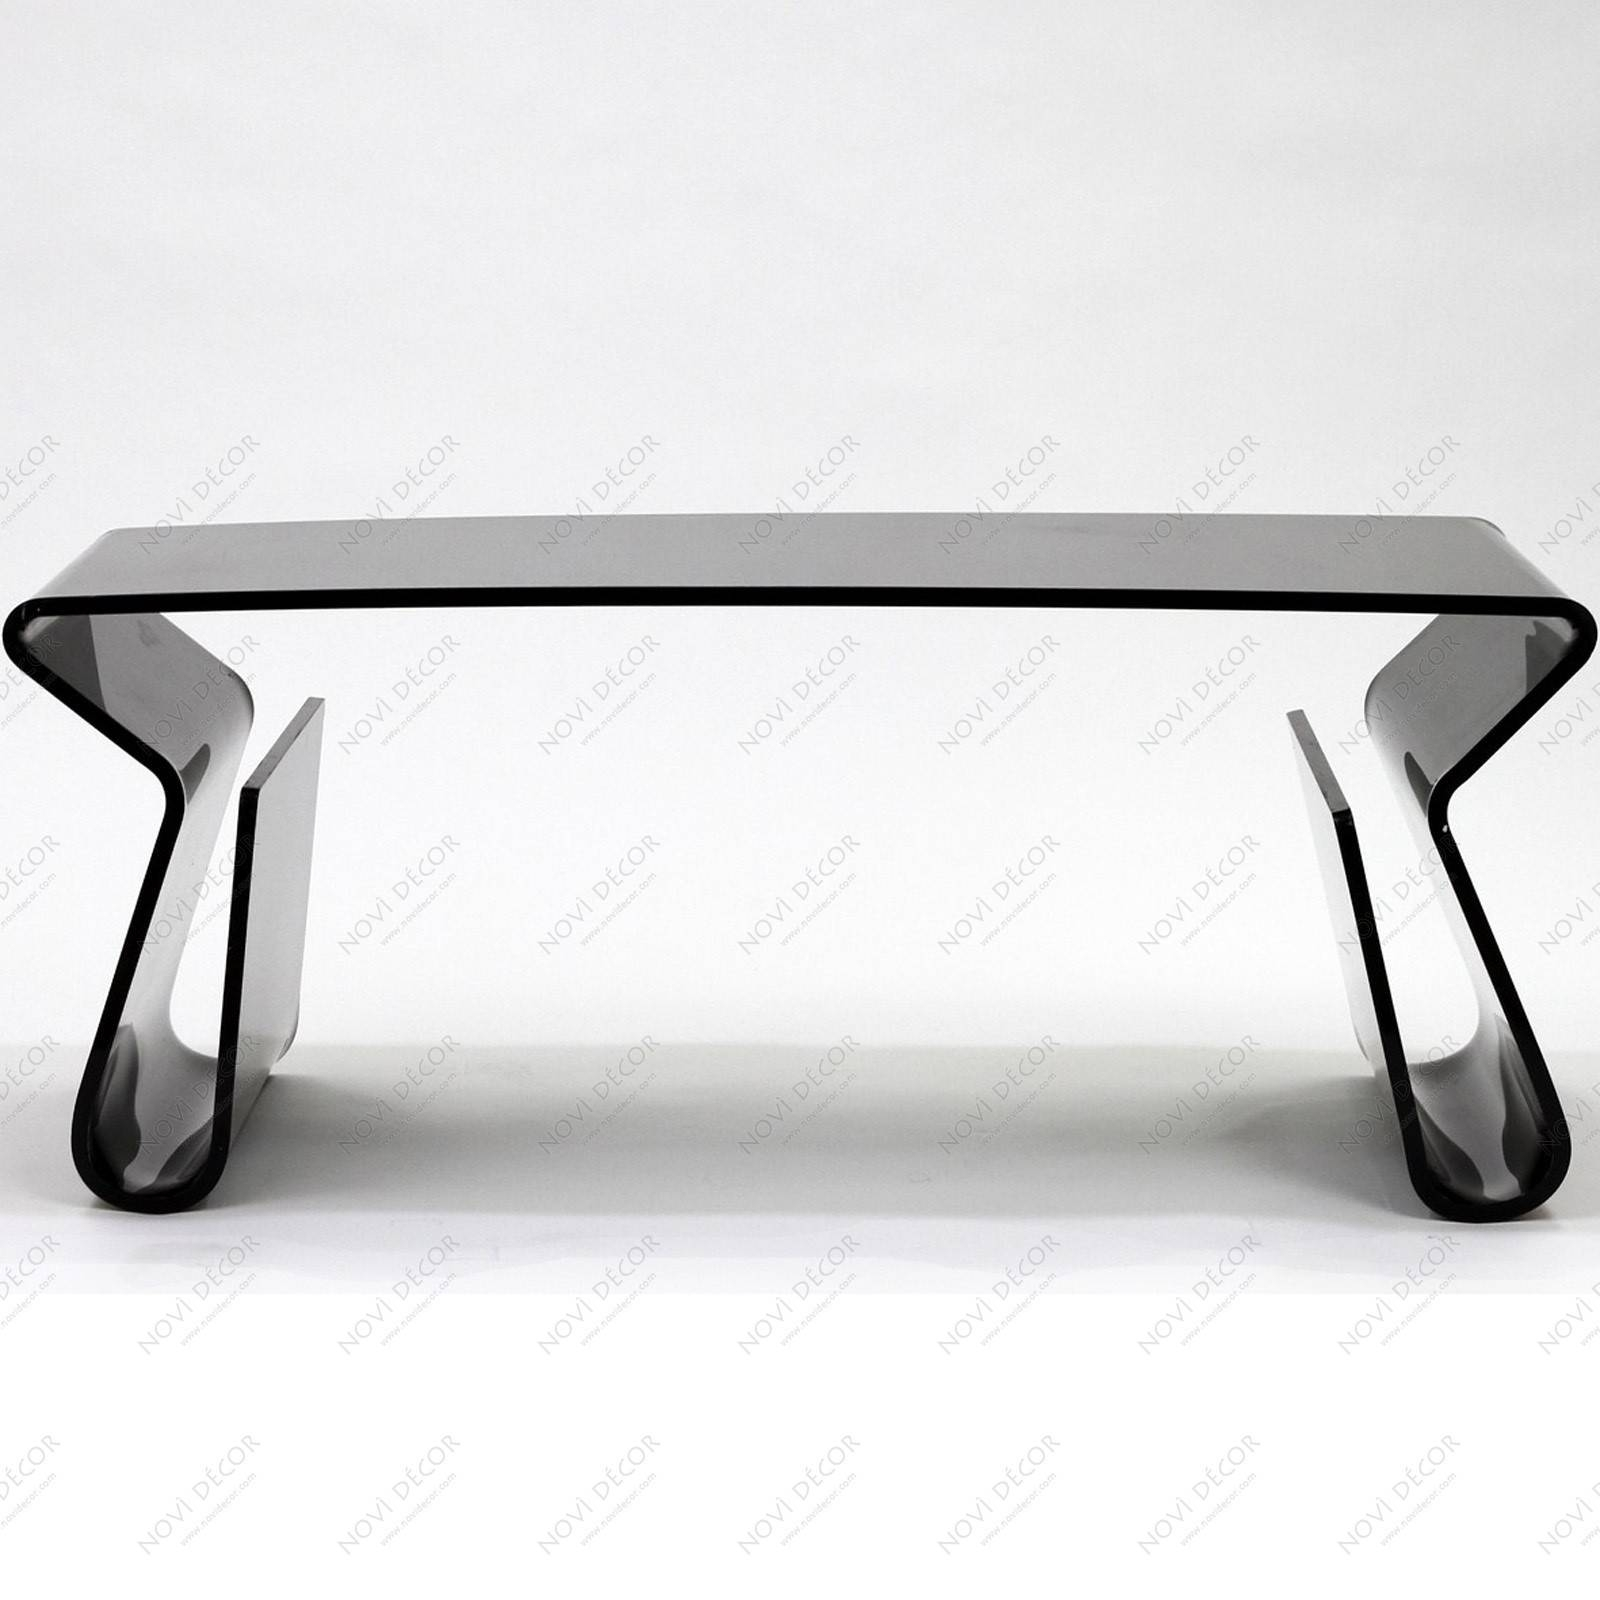 Black Acrylic Coffee Table | Coffee Tables Decoration with Acrylic Coffee Tables With Magazine Rack (Image 10 of 30)